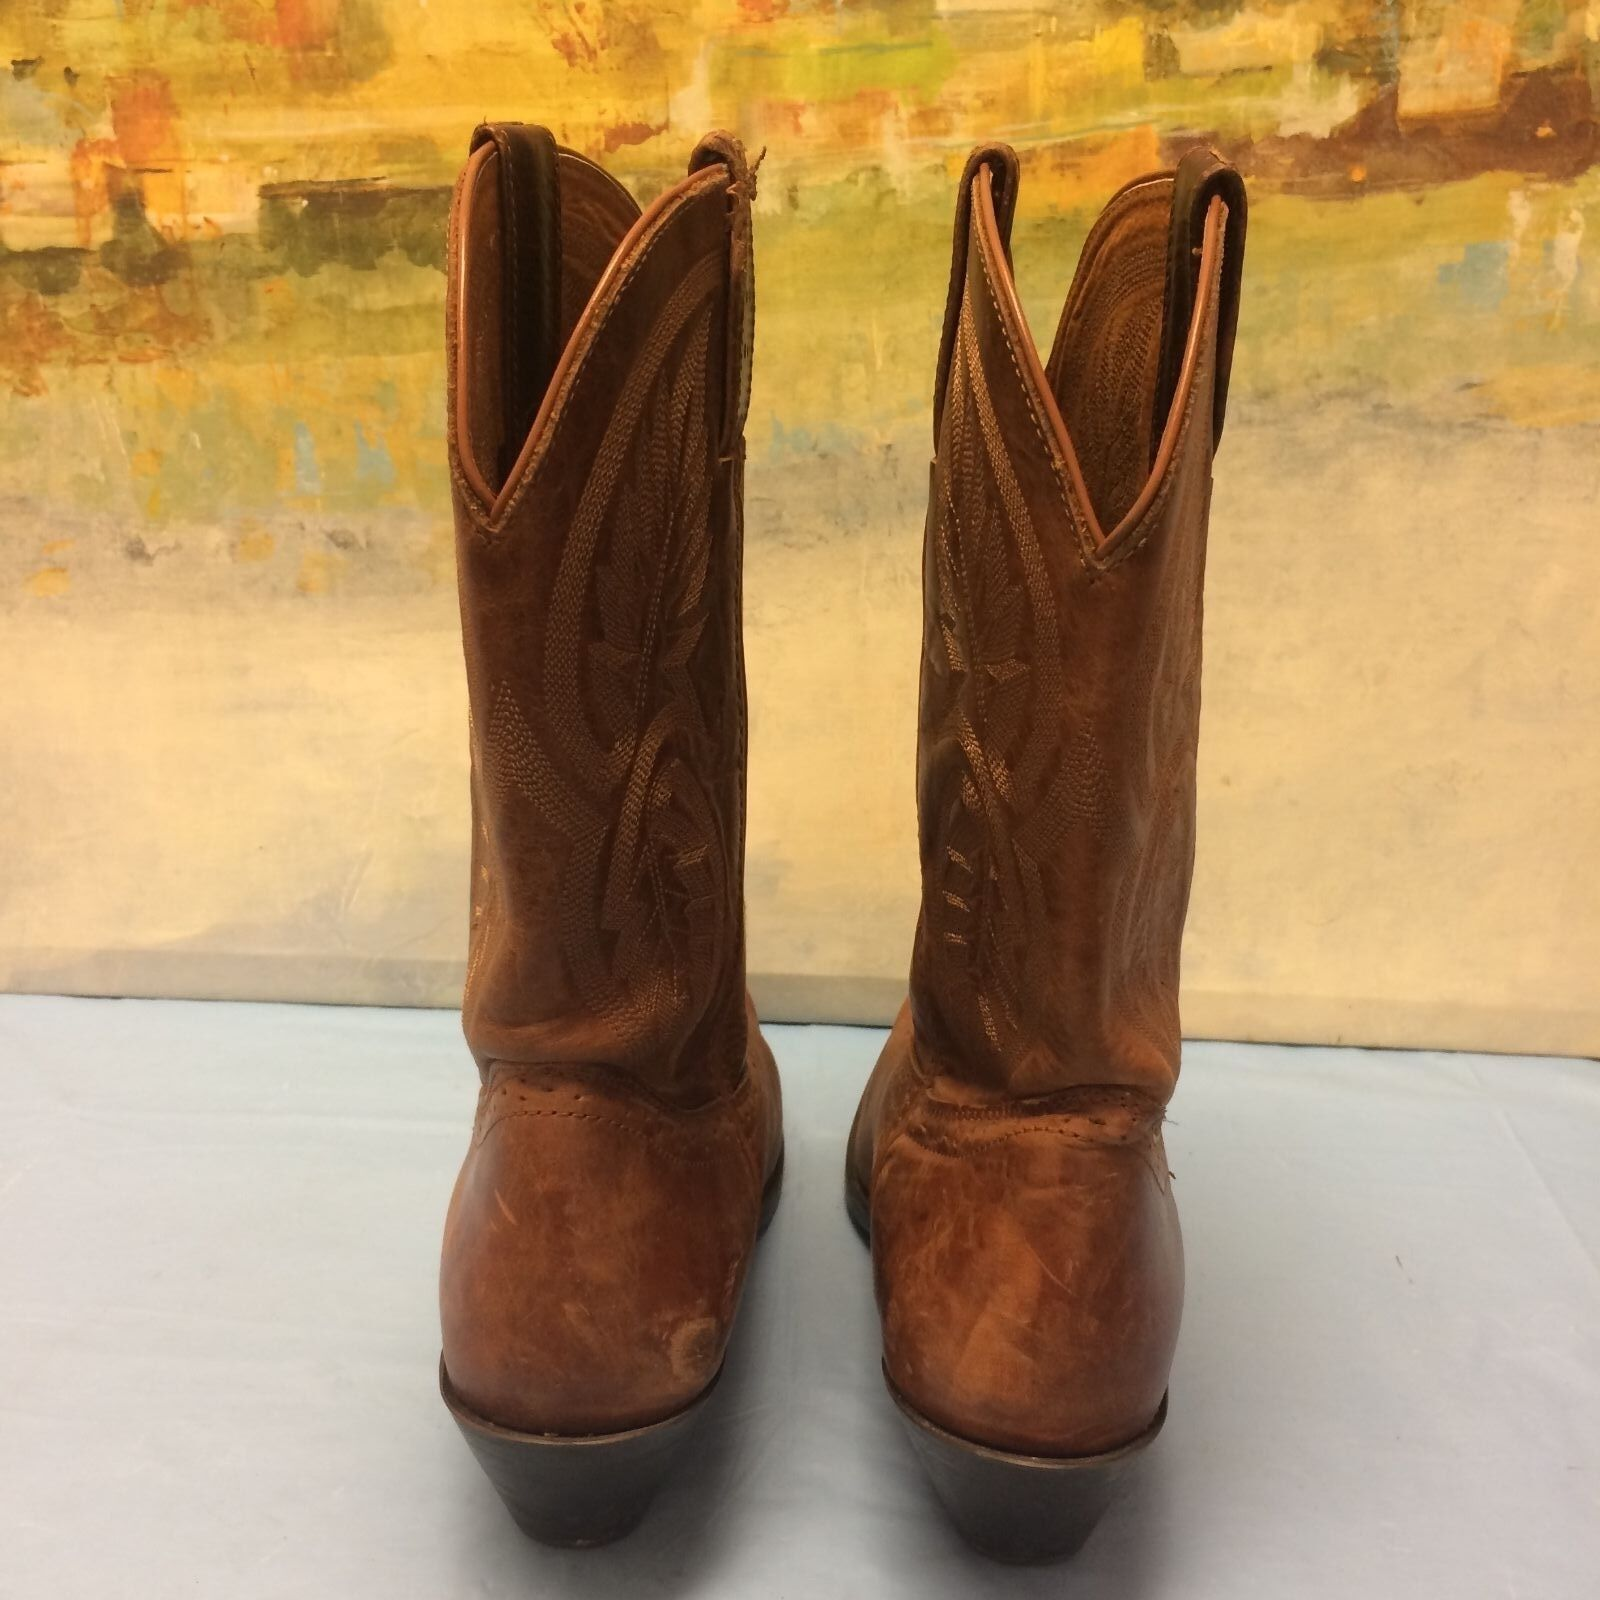 Damenschuhe BROWN UNBRANDED COWBOY LEATHER BROWN Damenschuhe Stiefel SIZE 8 M 49c0d0